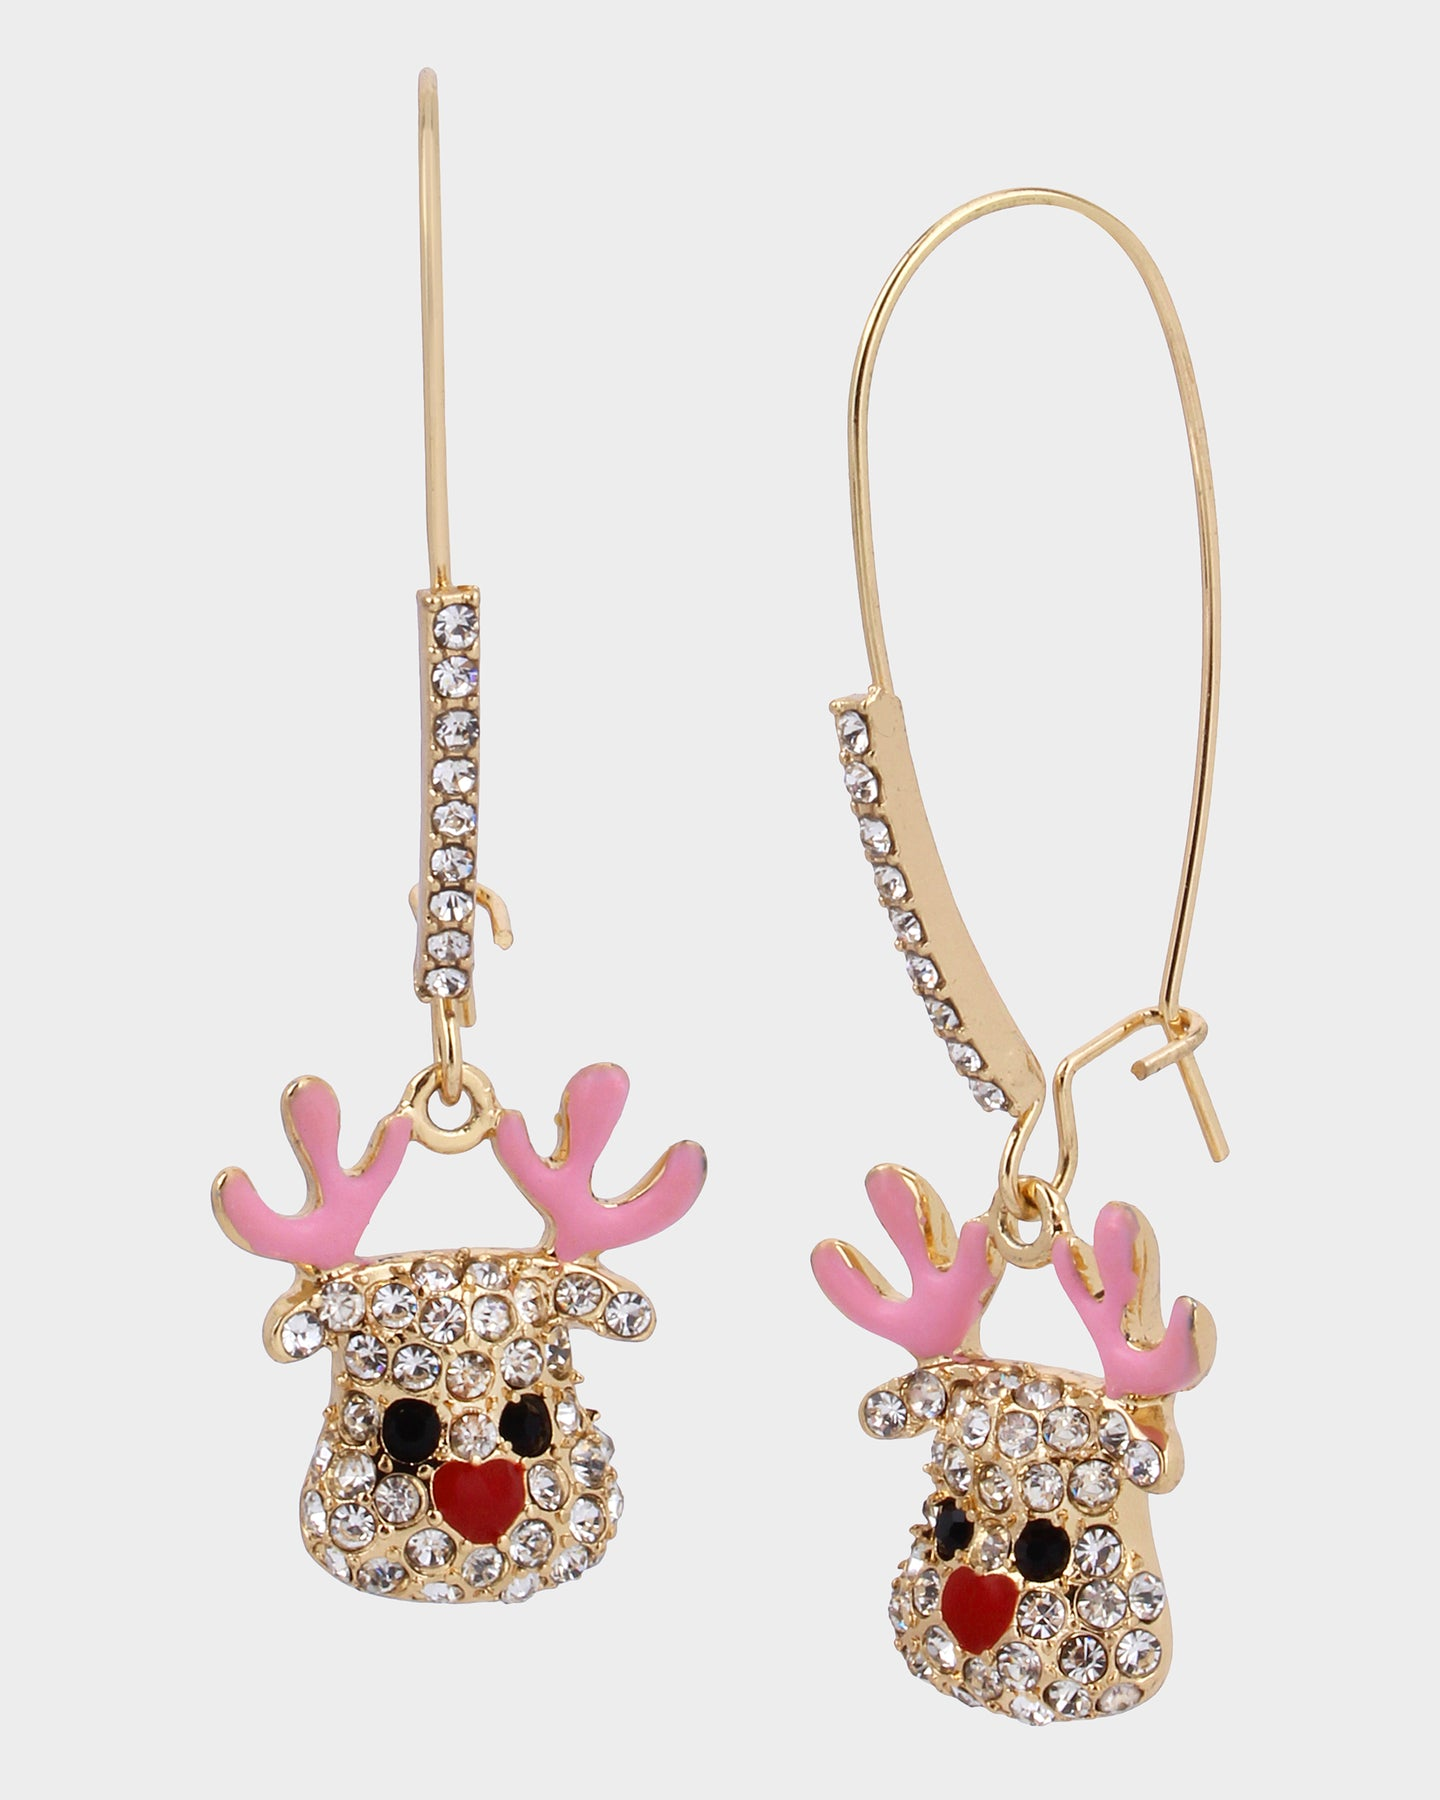 PINK XMAS REINDEER HOOK EARRINGS PINK - JEWELRY - Betsey Johnson